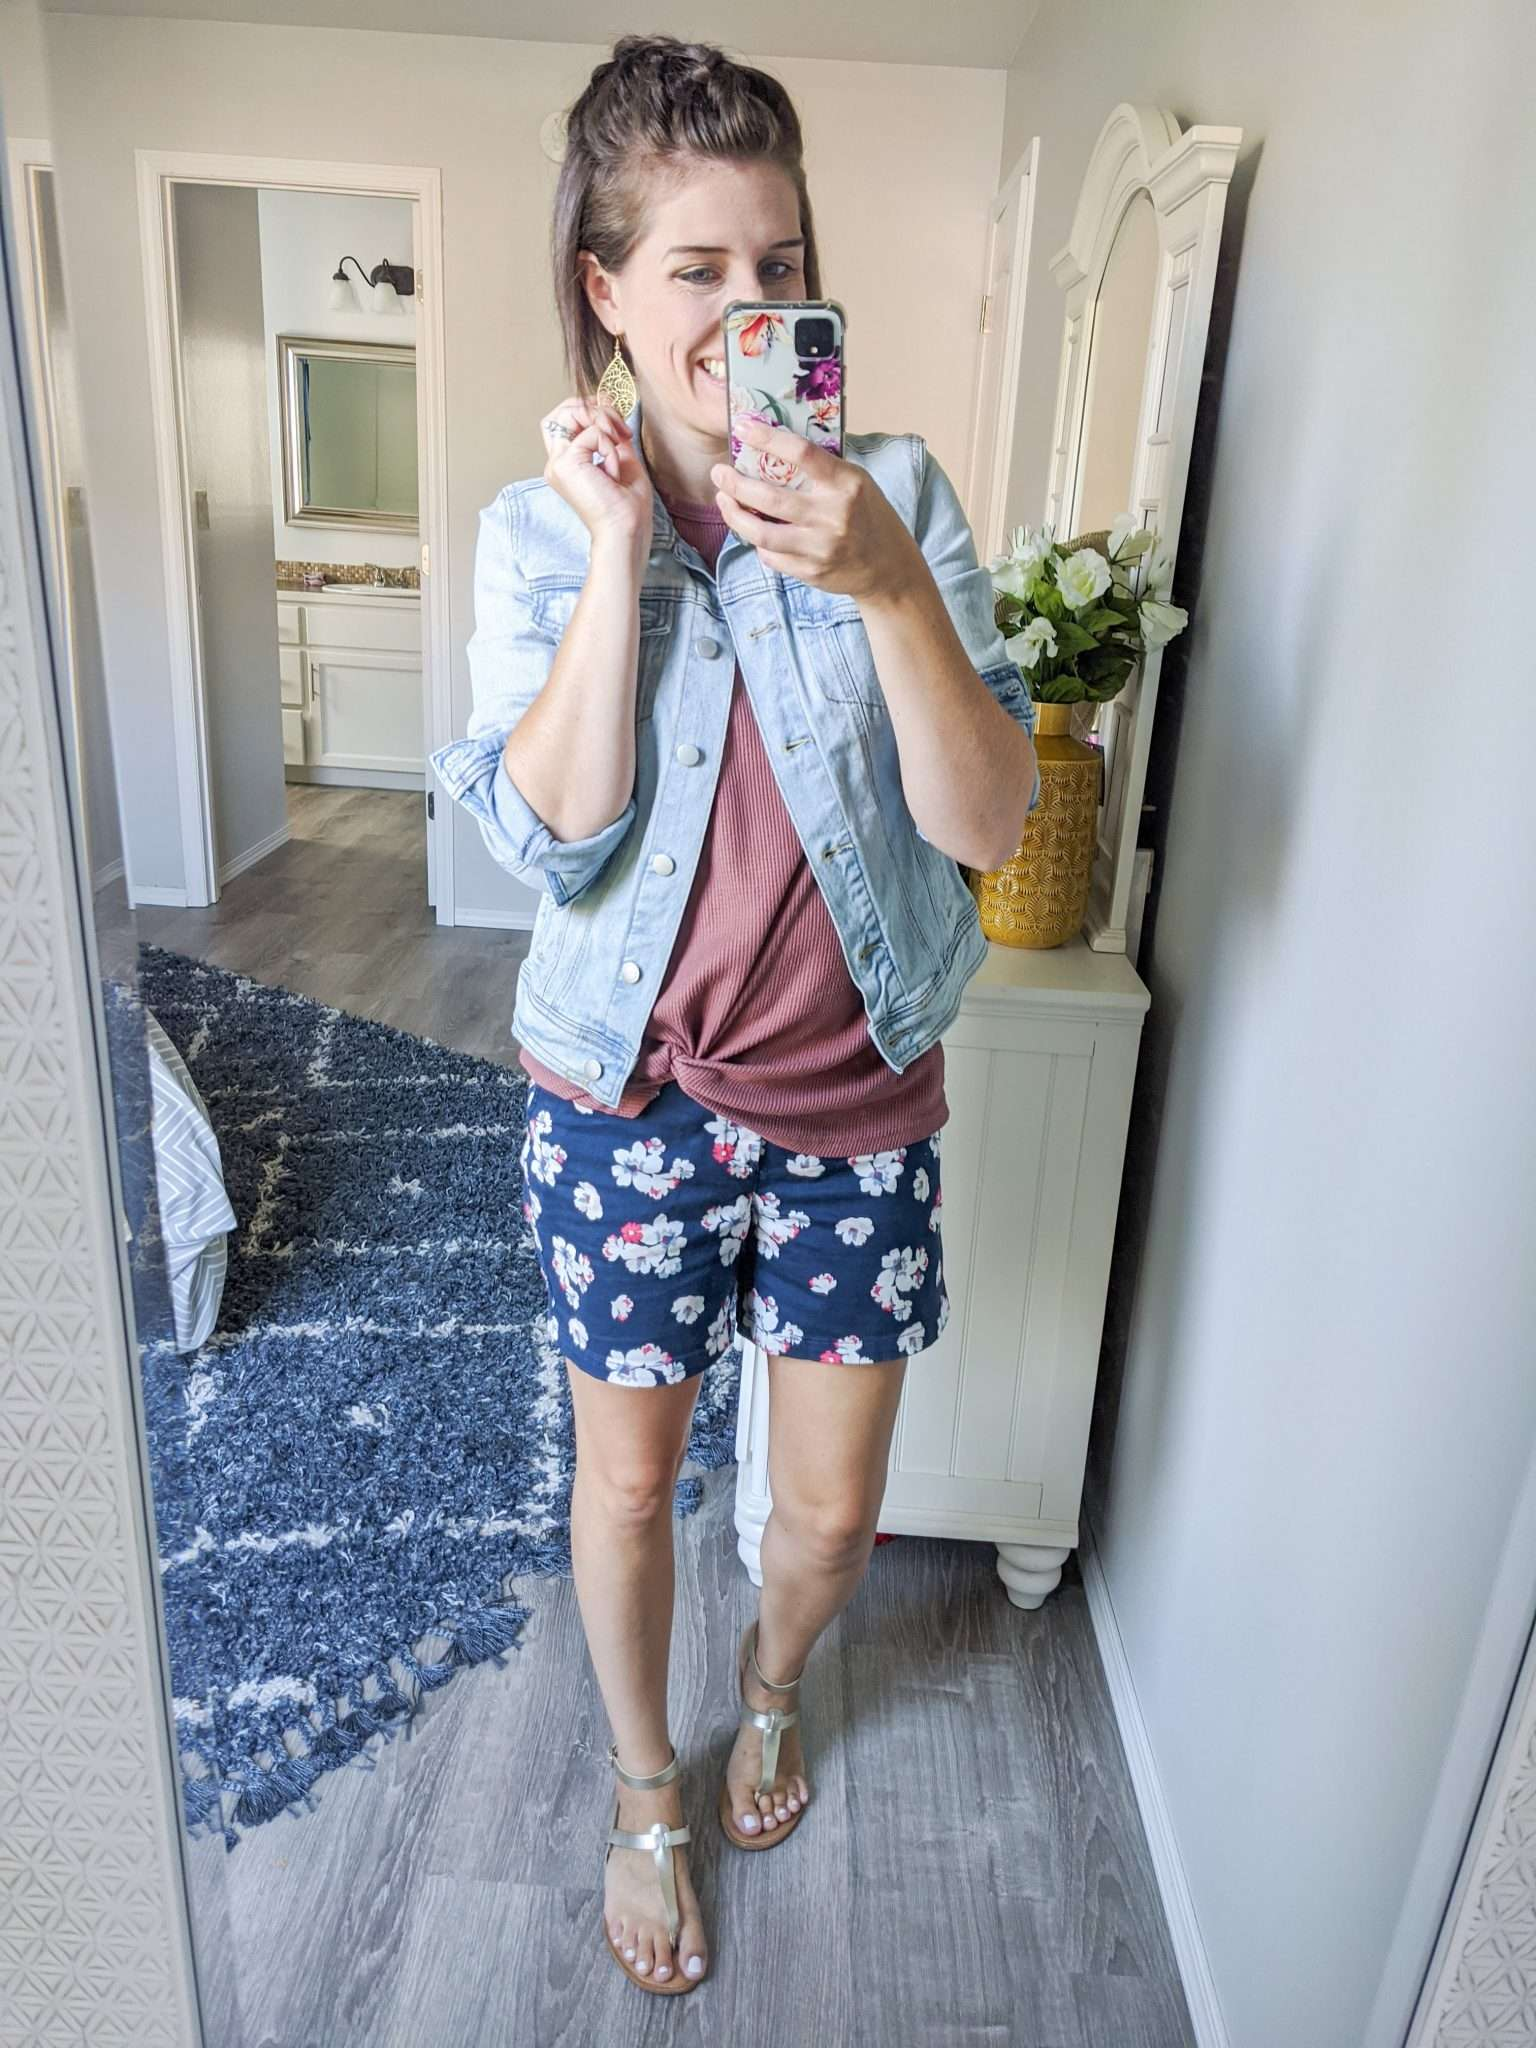 Summer to Fall transition outfits - How to transition summer clothes to fall - Denim Jackets and fallish earrings